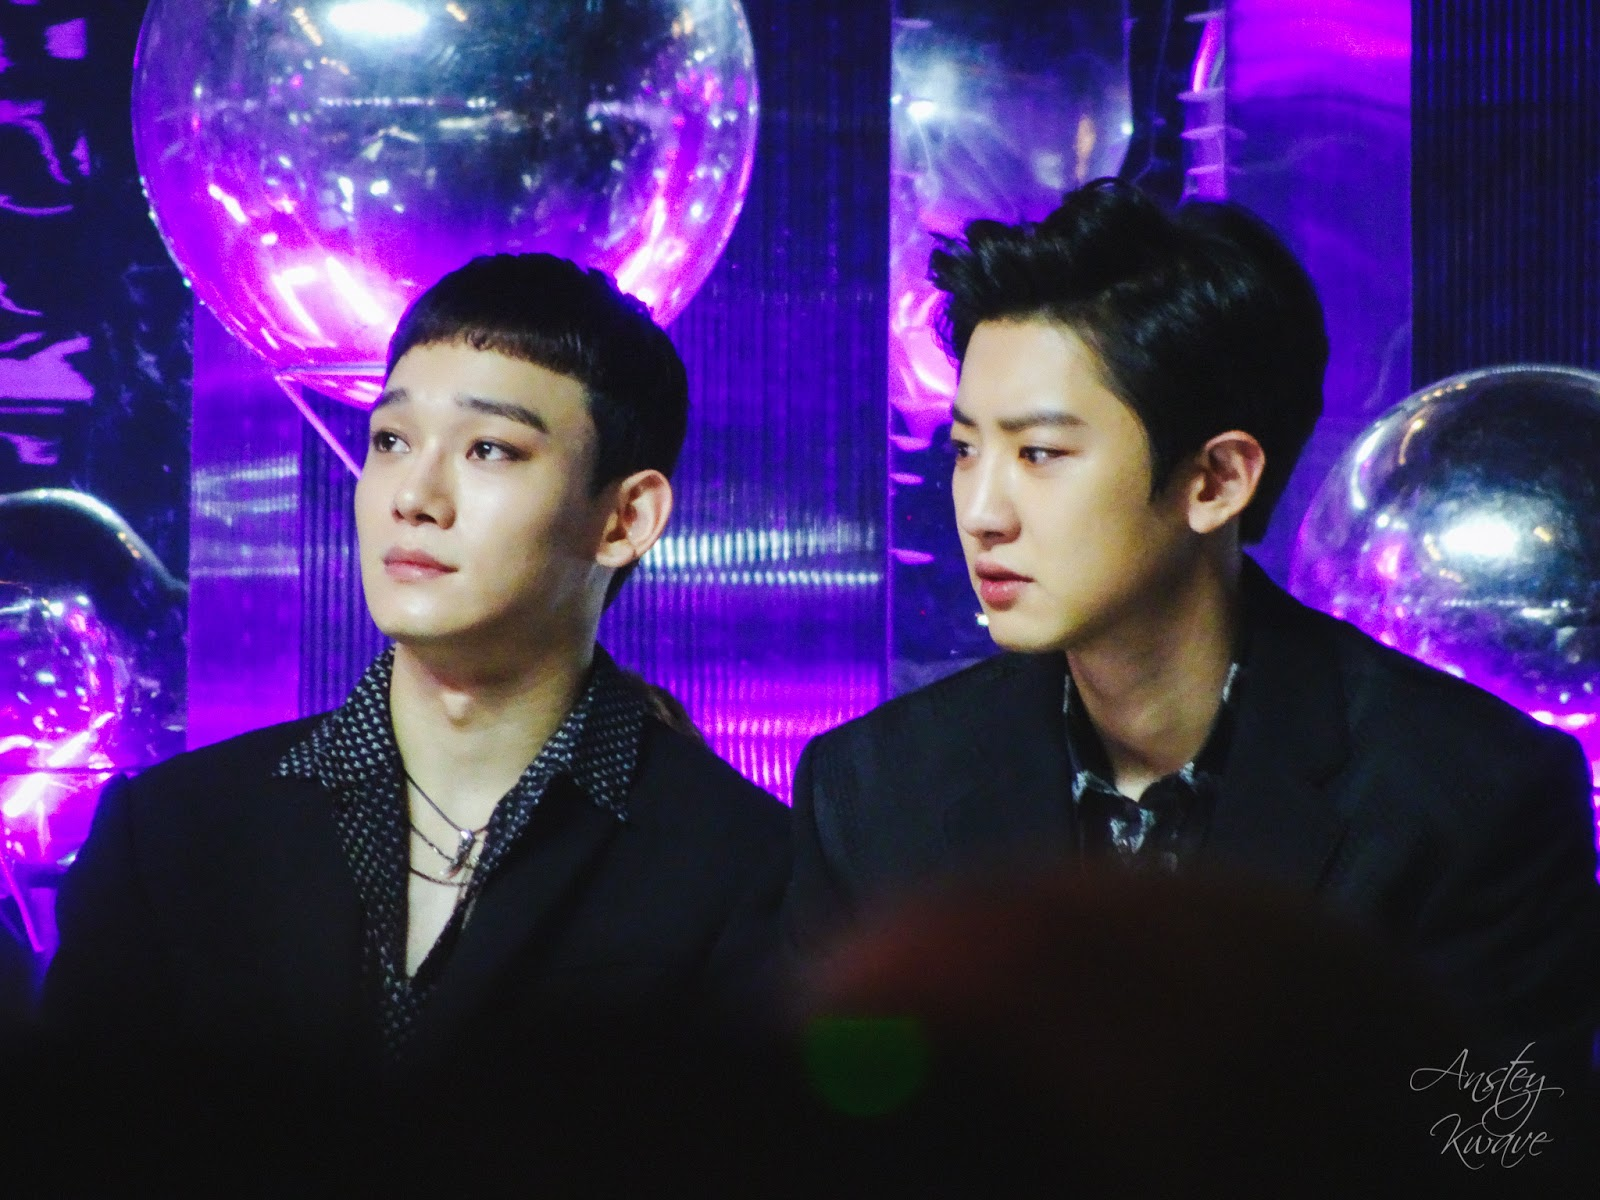 Chen and Chanyeol, members of famous Korean k-pop boy band EXO at Melon Music Awards (MMA) 2017 in Seoul, South Korea